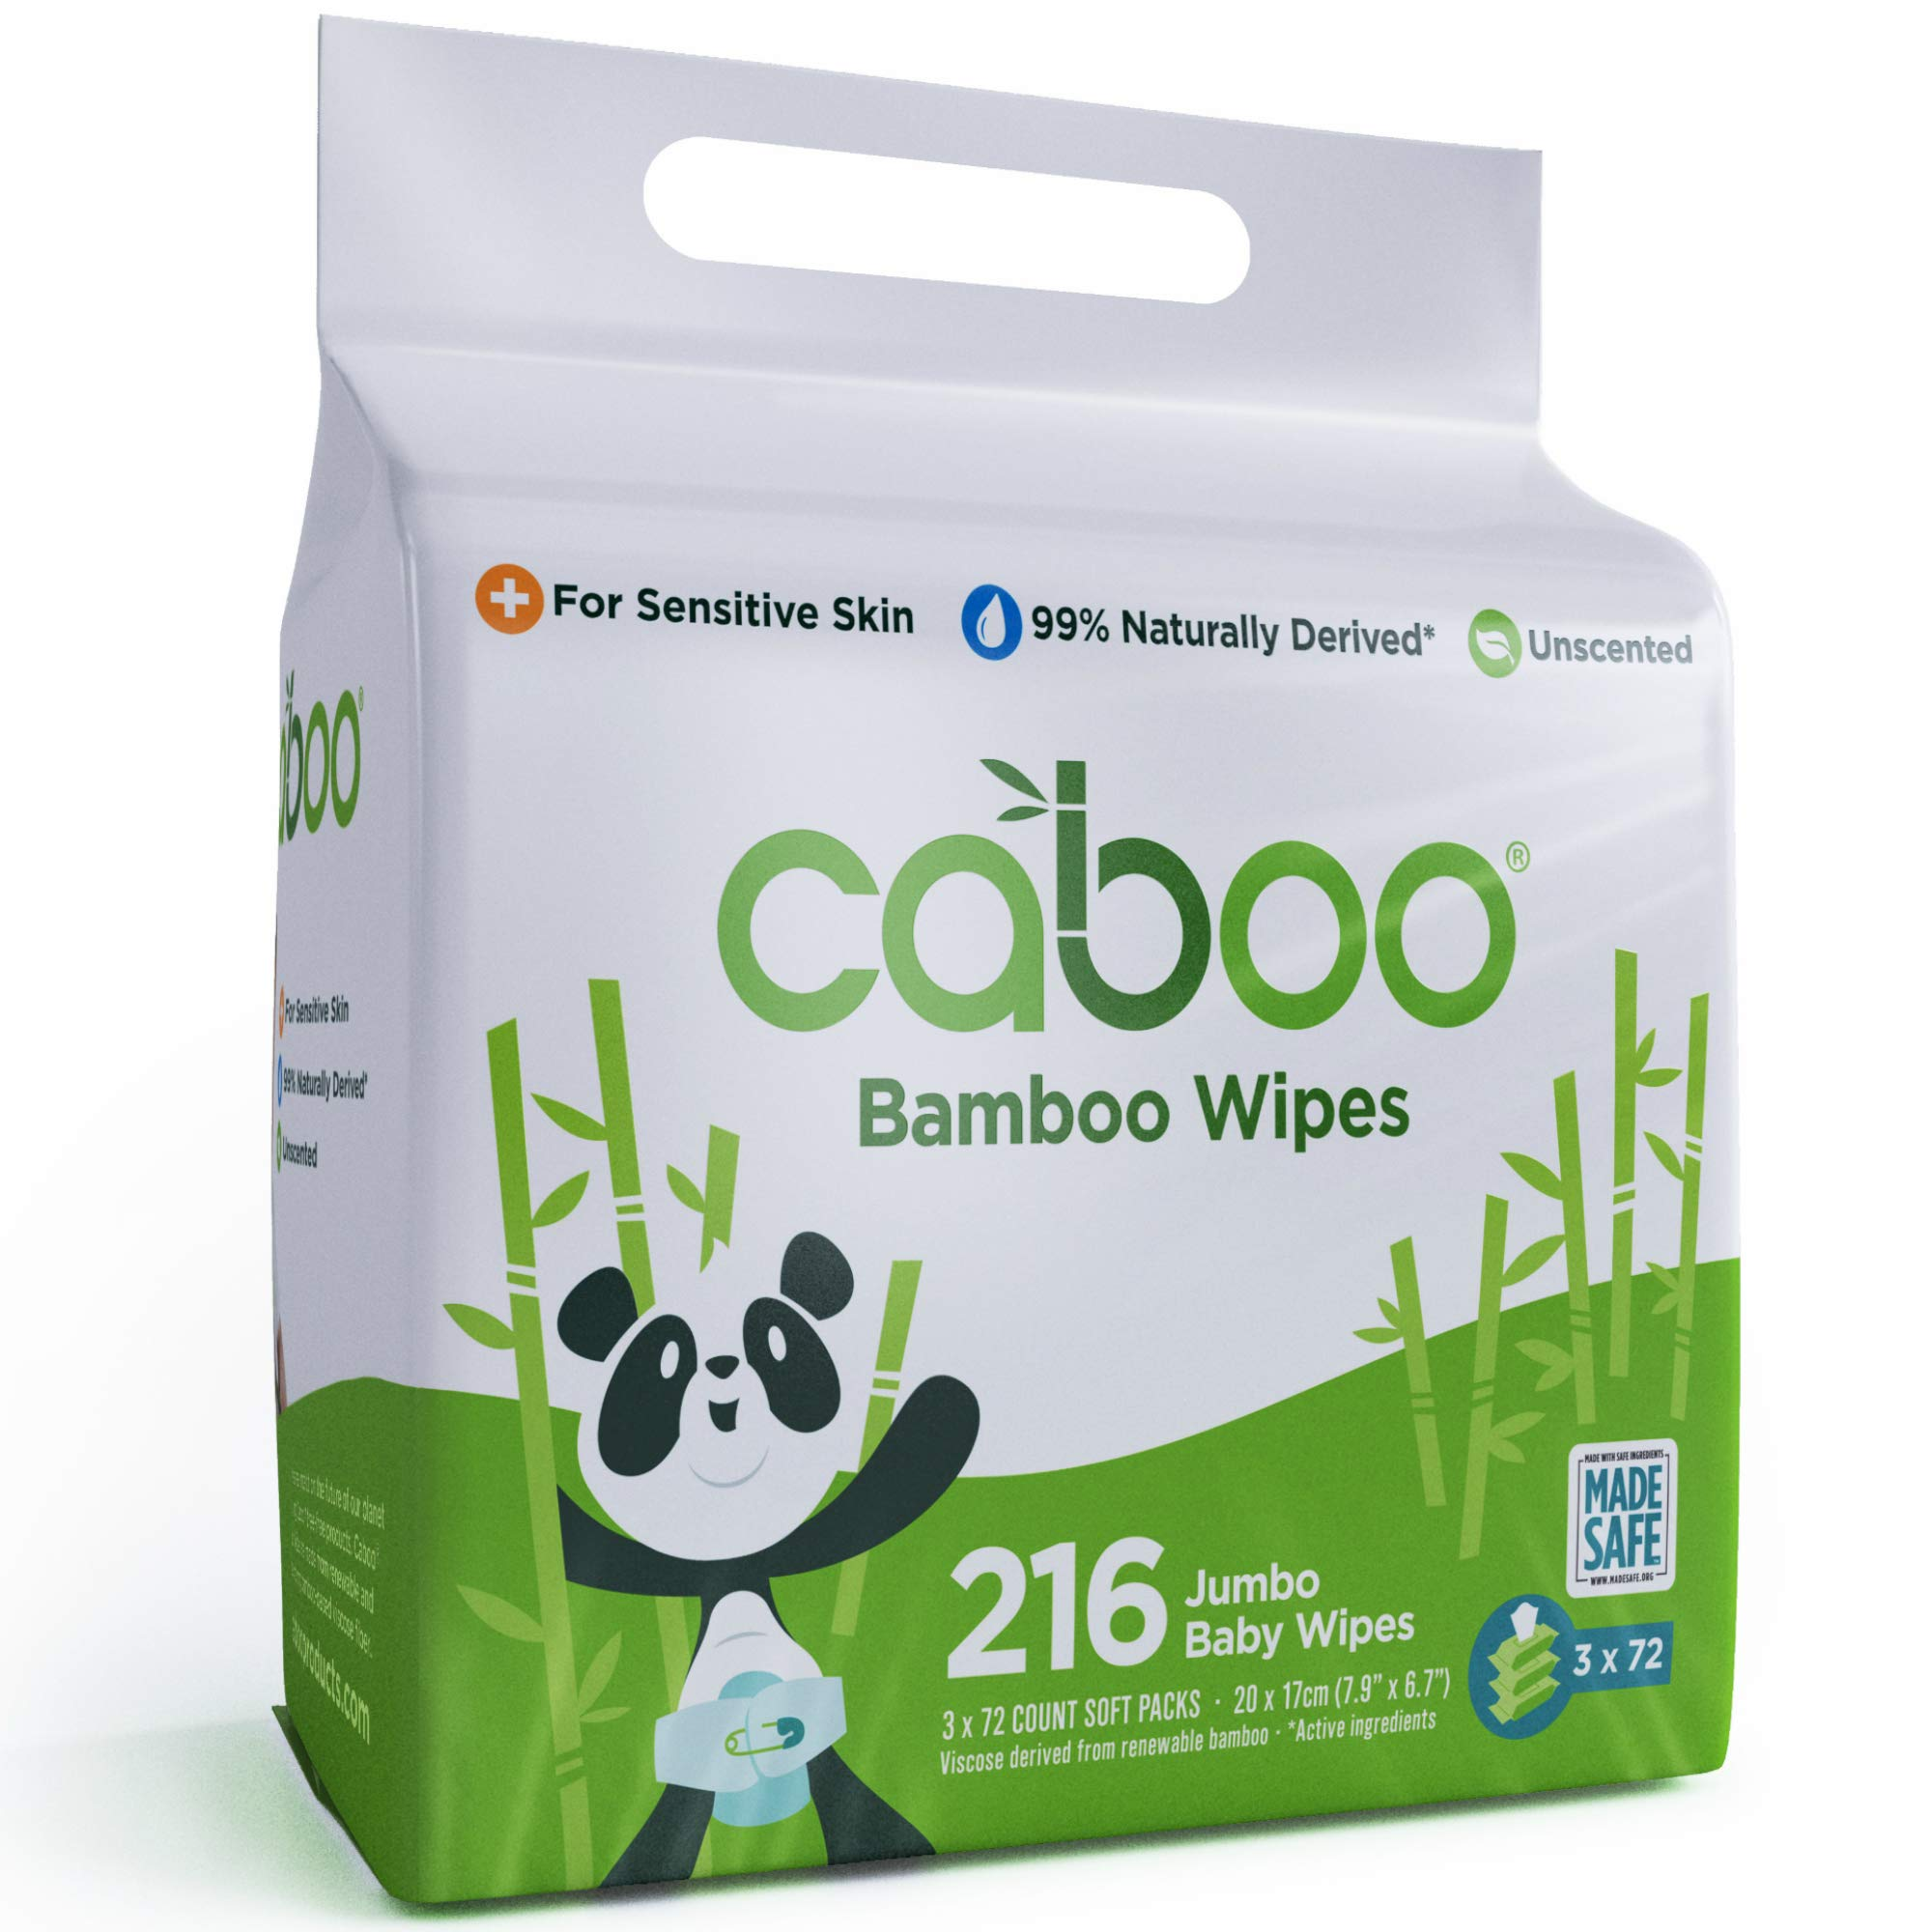 Caboo Tree-Free Bamboo Baby Wipes, Eco-Friendly Naturally Derived Baby Wipes for Sensitive Skin, 3 Resealable Peel Tab Travel Packs, 72 Wipes Per Pack, Total of 216 Wipes by Caboo